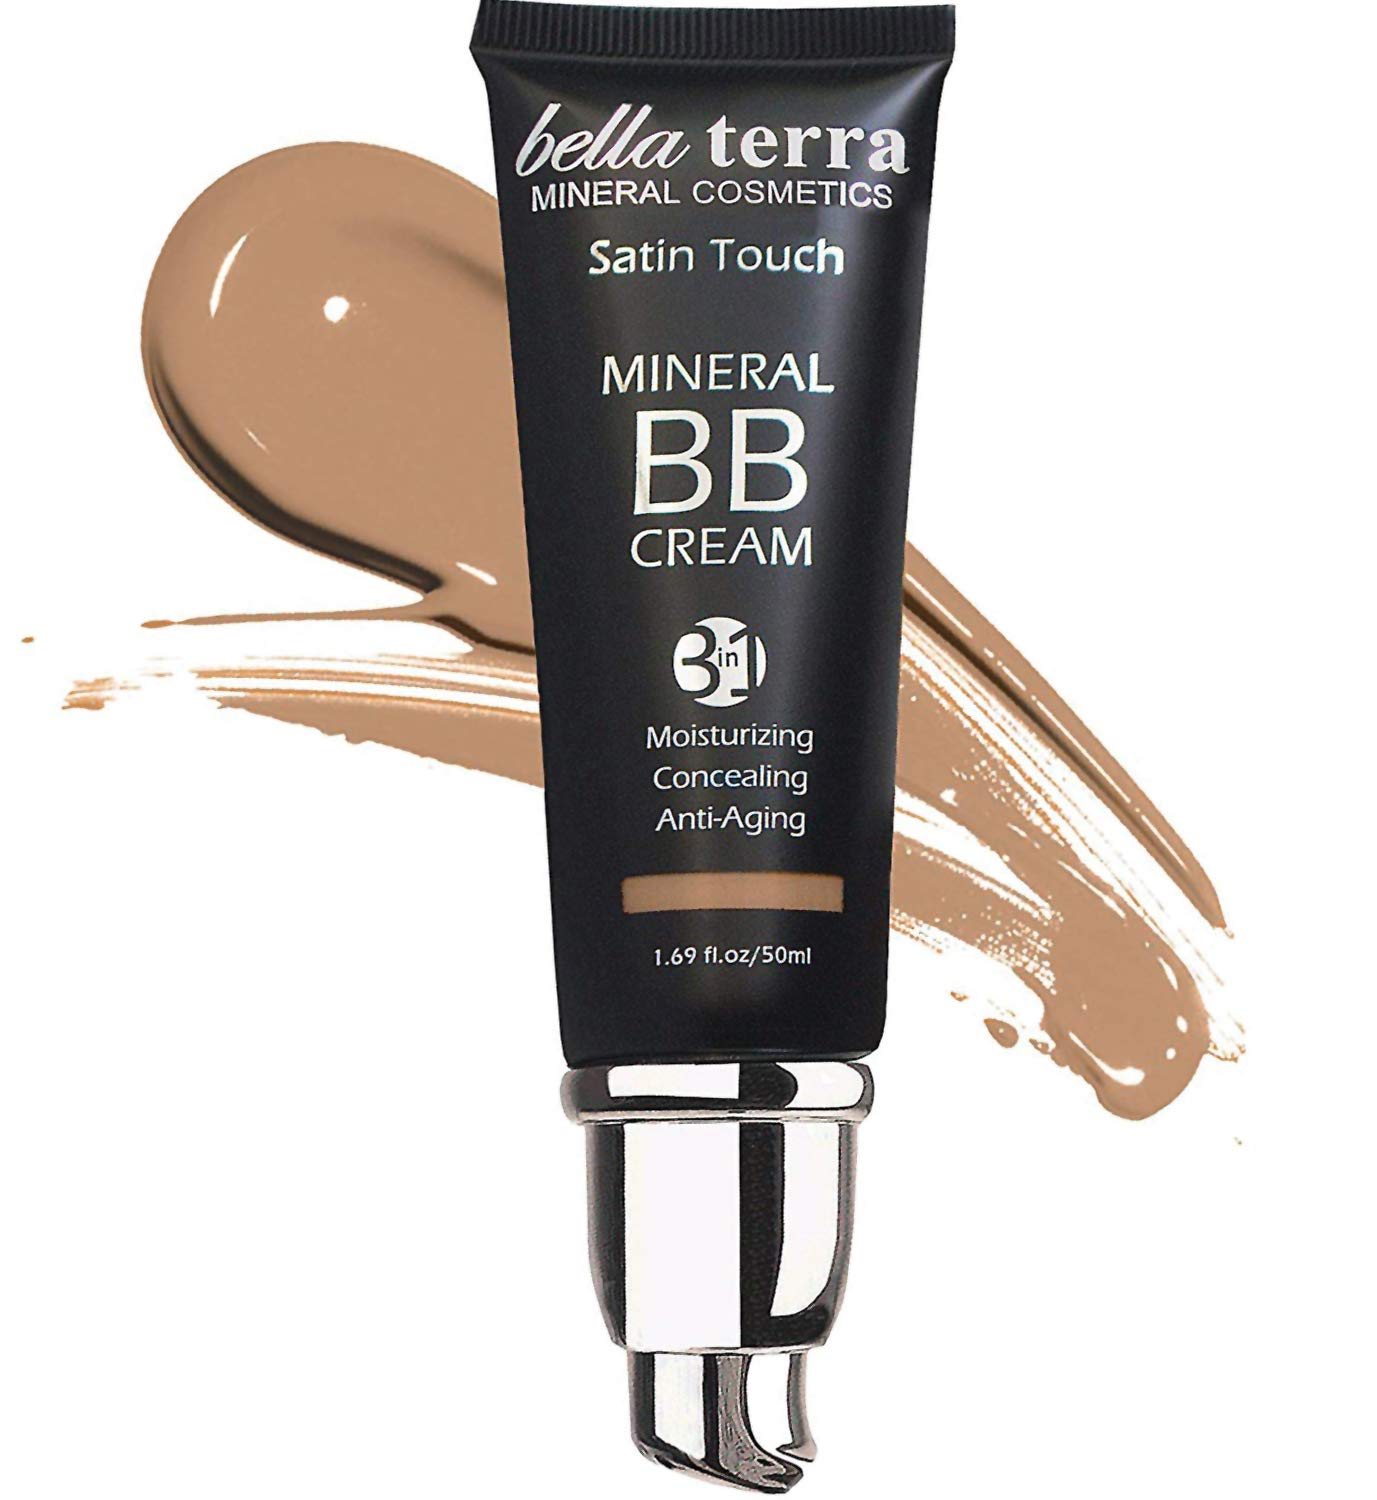 Bellaterra Cosmetics BB Cream Tinted Moisturizer, Mineral Foundation, Concealer, Anti-Aging, Natural Sun Protection, All Shades 1.69oz – Medium Tan 105